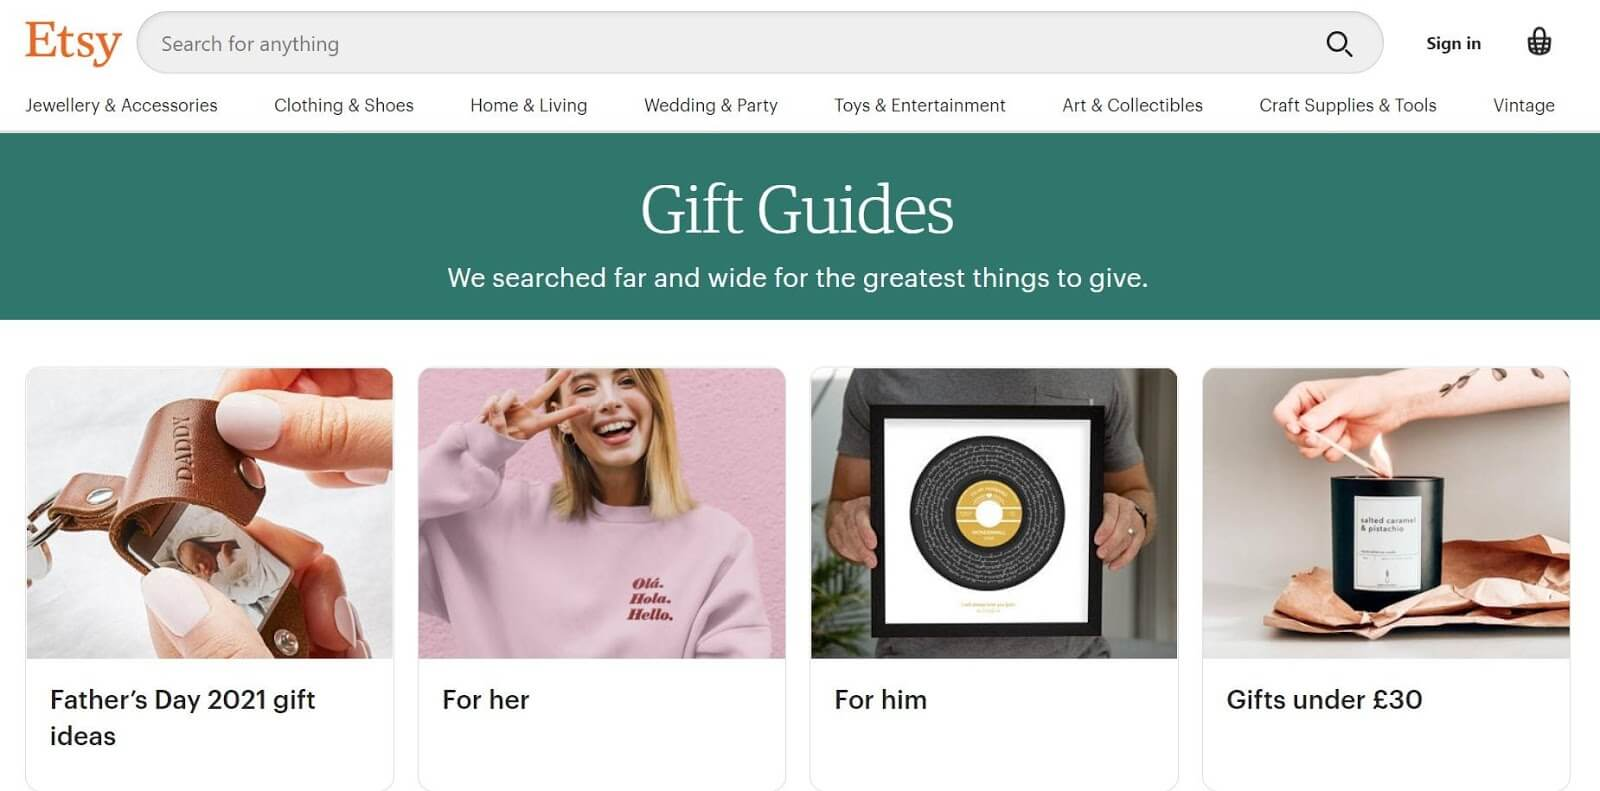 Etsy gift guides